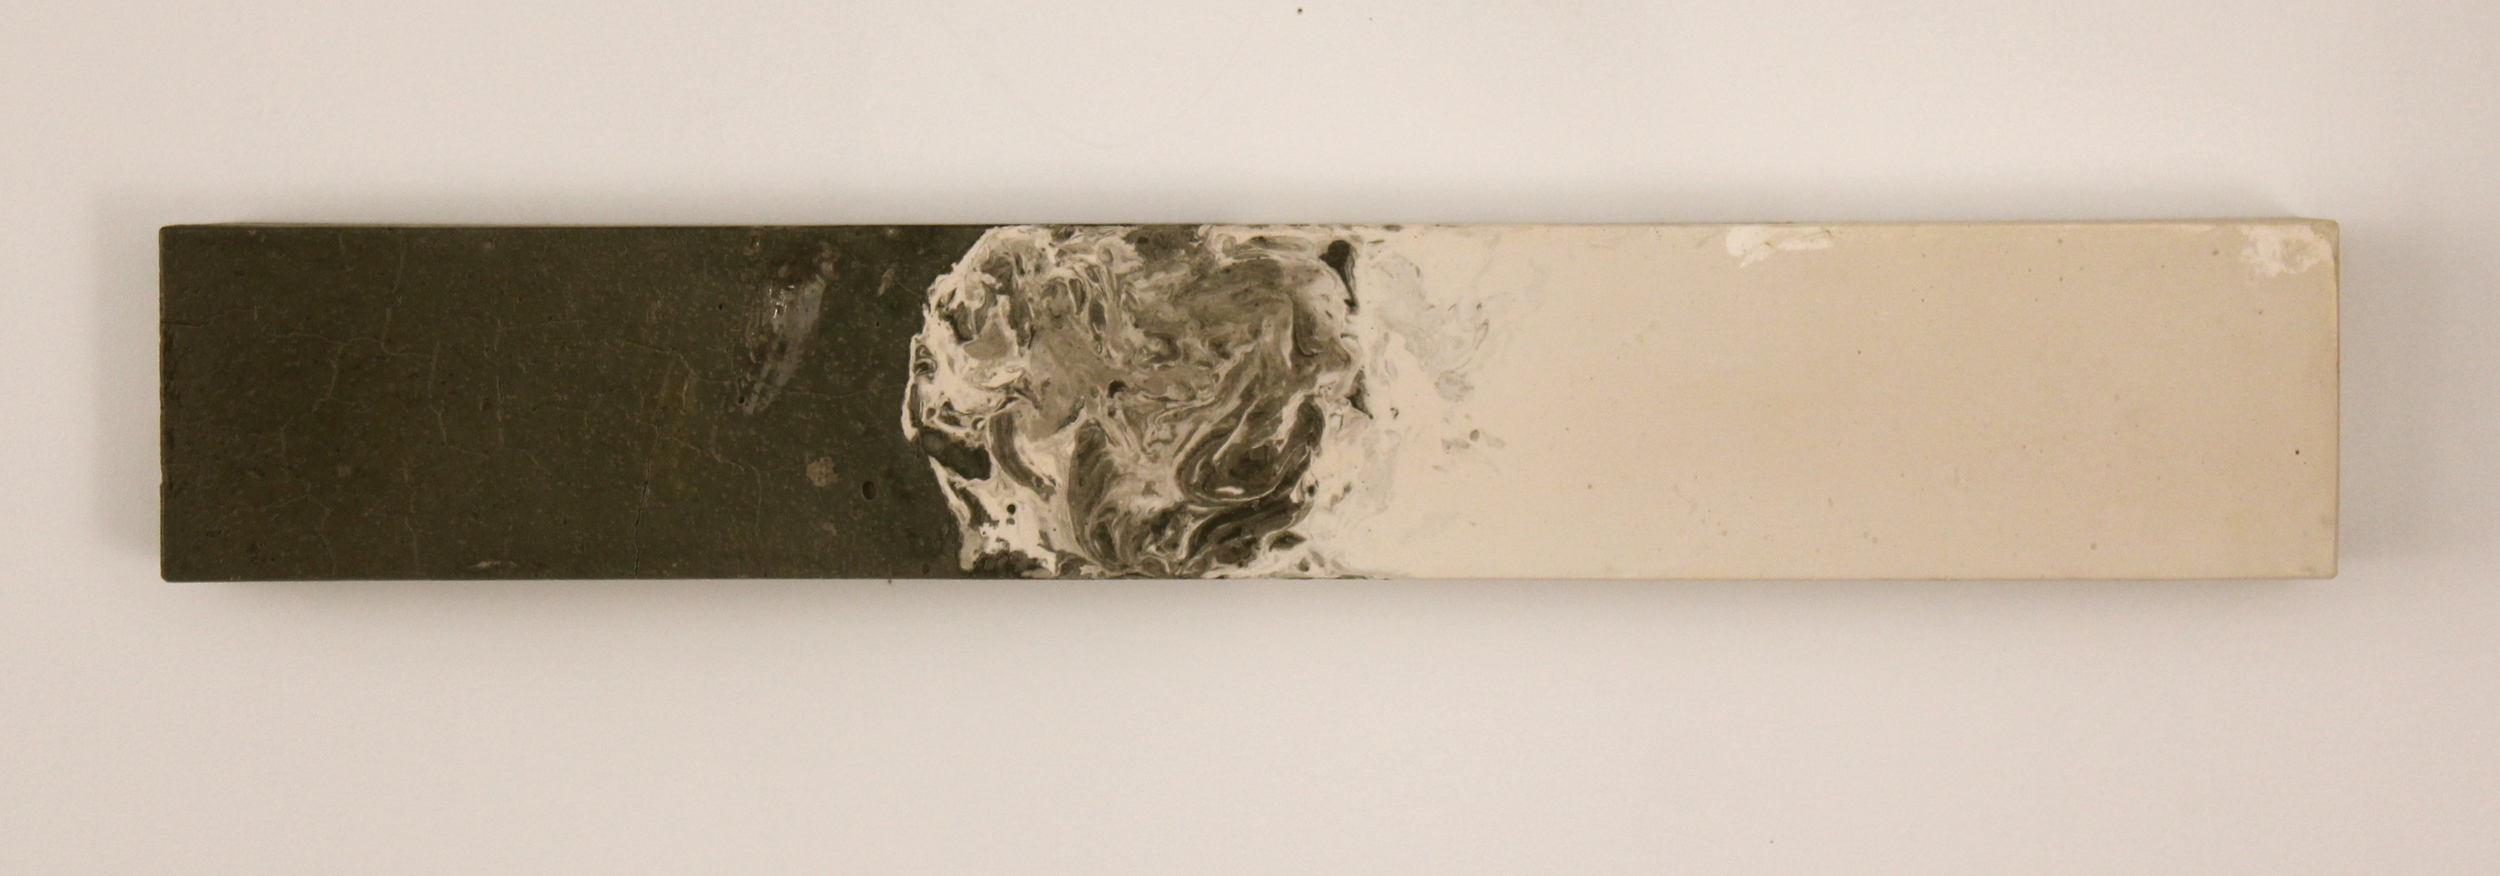 Cement vs. Plaster. Cast cement and plaster, clear finish. 2015. approx. 5x28x4in.